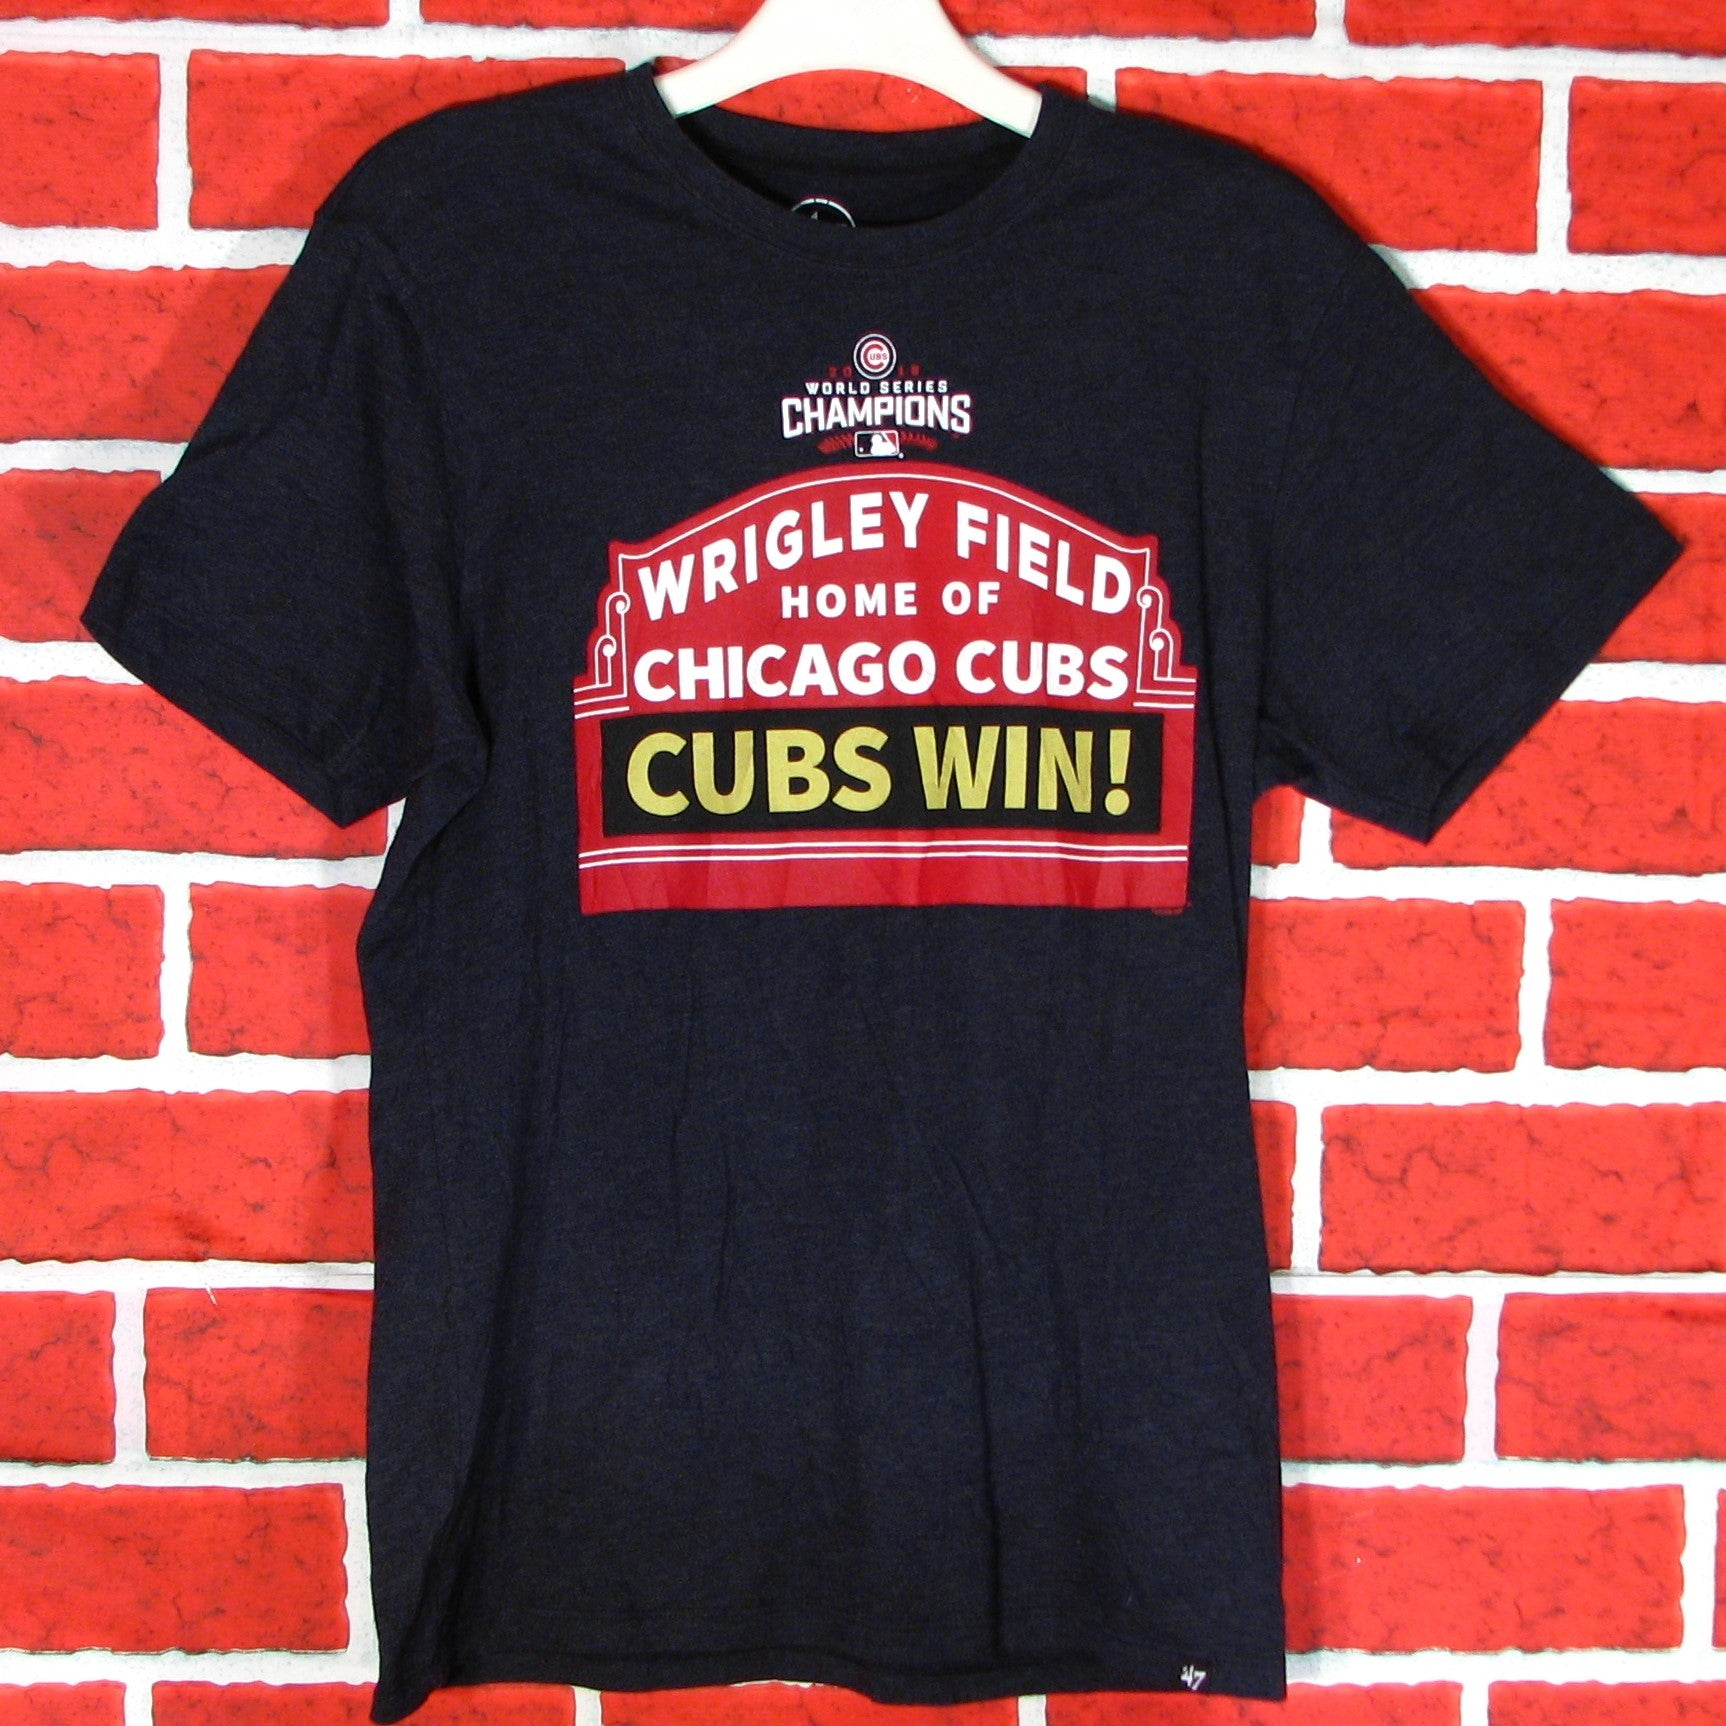 09d6511c2 Wrigley Field Home of the Chicago Cubs Cubs Win 2016 T-Shirt ...